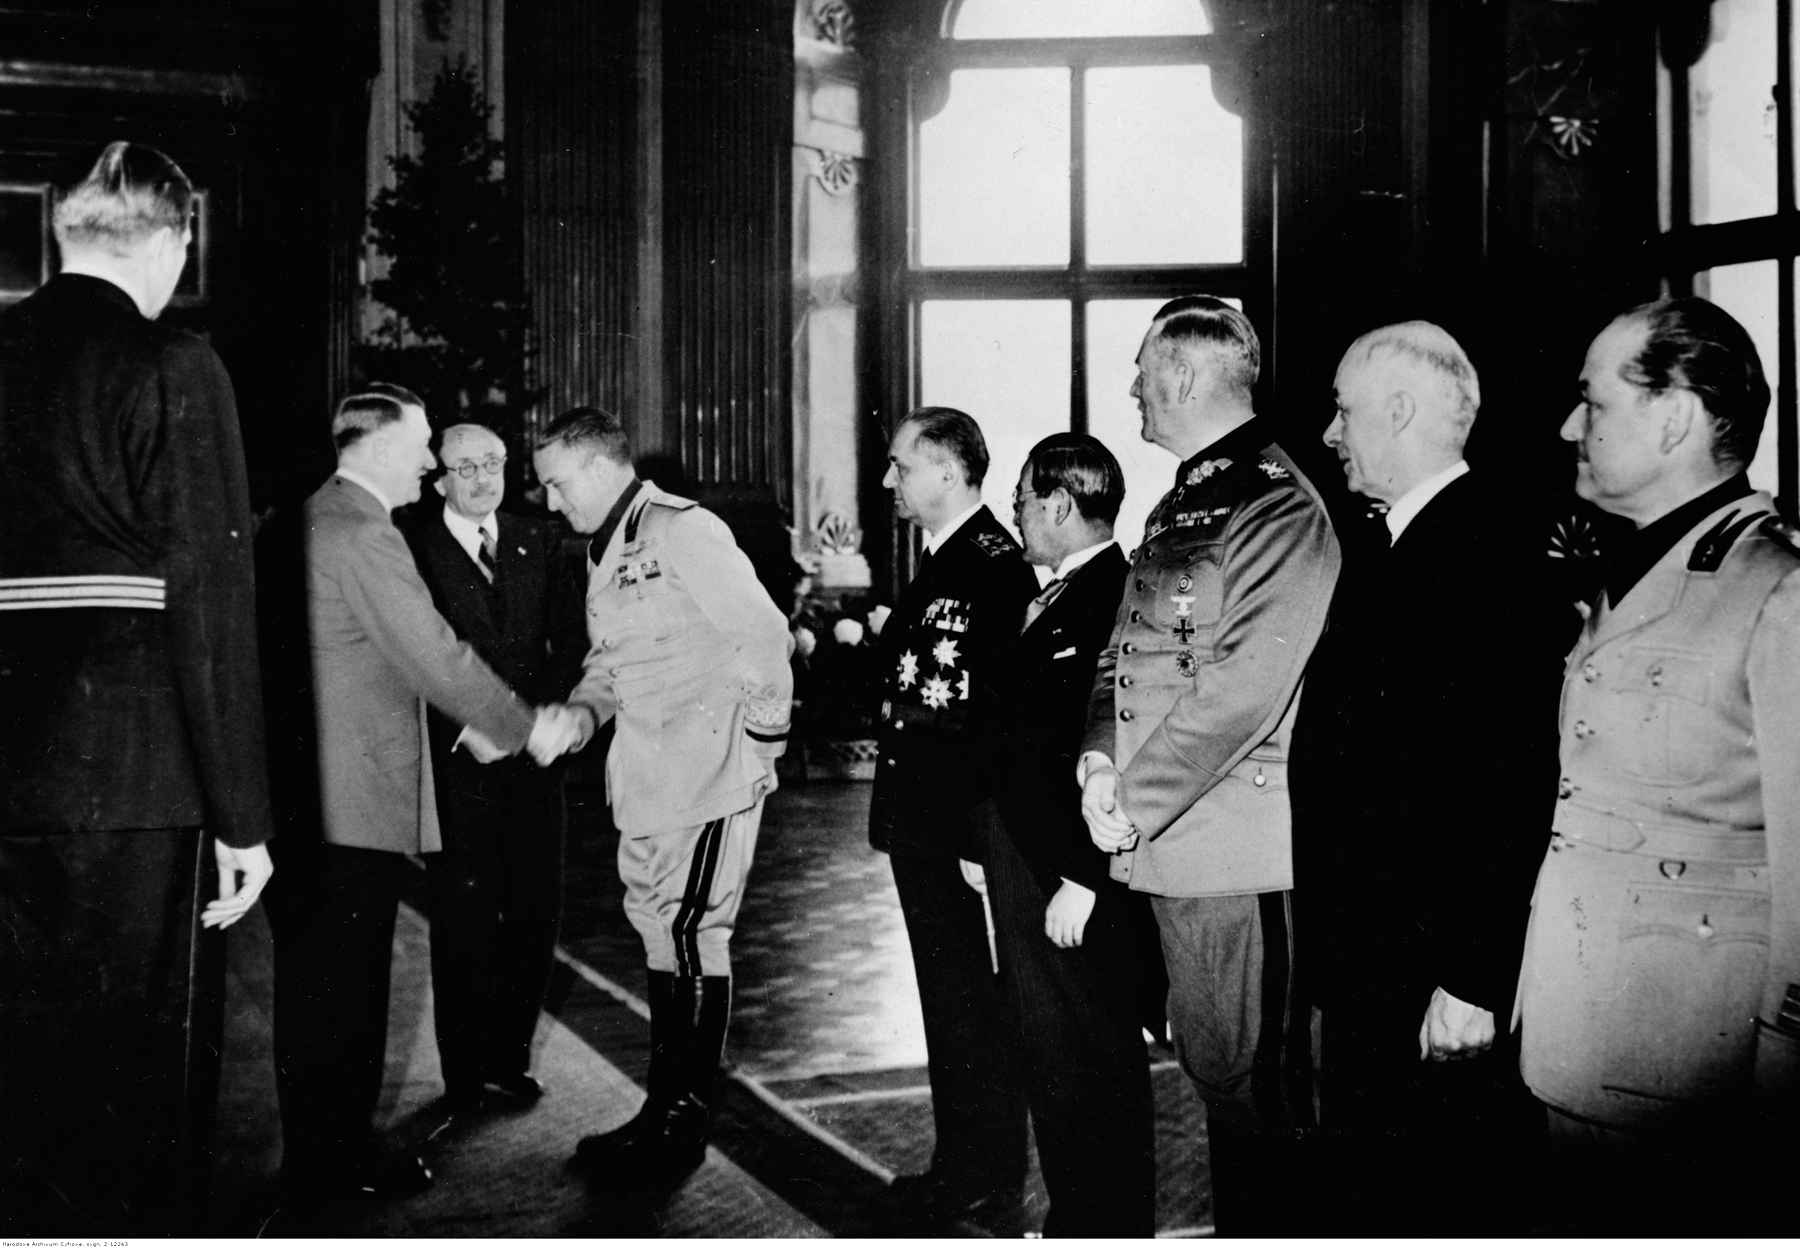 Adolf Hitler greets the representatives of the Tripartite Pact in Vienna, Pál Teleki, Döme Sztójay and István Csáky (Hungary), Galeazzo Ciano (Italy), Saburo Kurusu (Japan) et Dome Sztojay